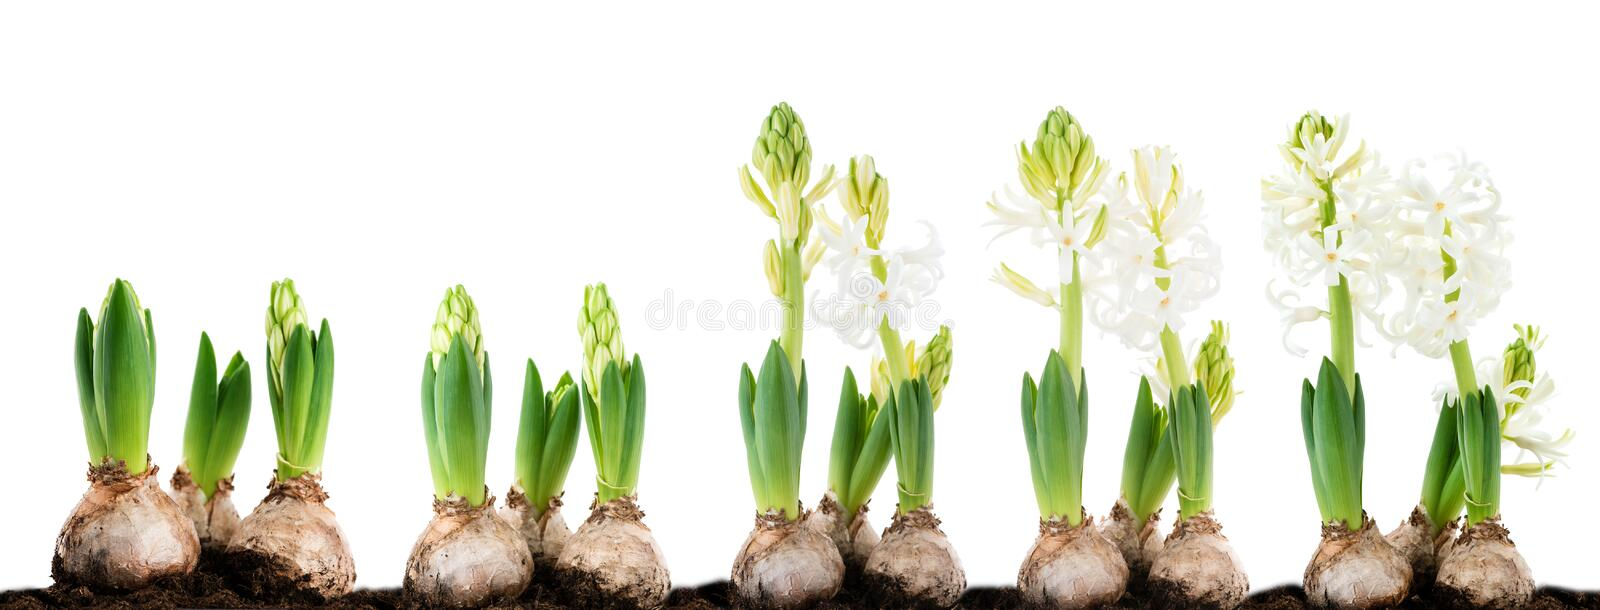 Close-up of sprout white hyacinth in a pot isolated on white background stock photography